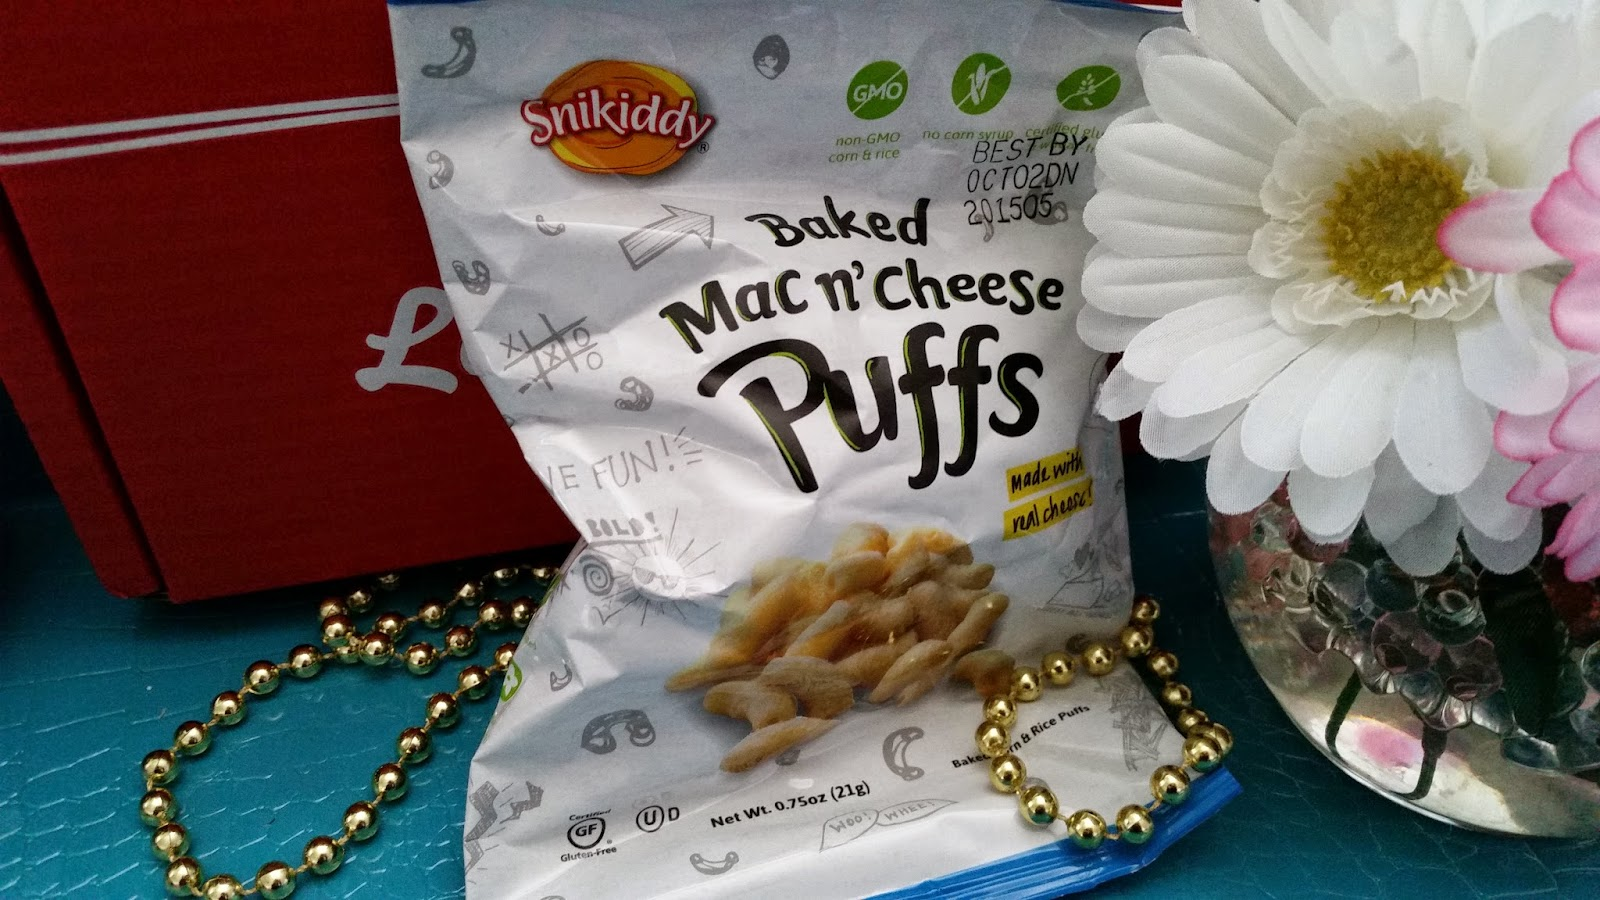 Snikiddy Baked Mac N' Cheese Puffs